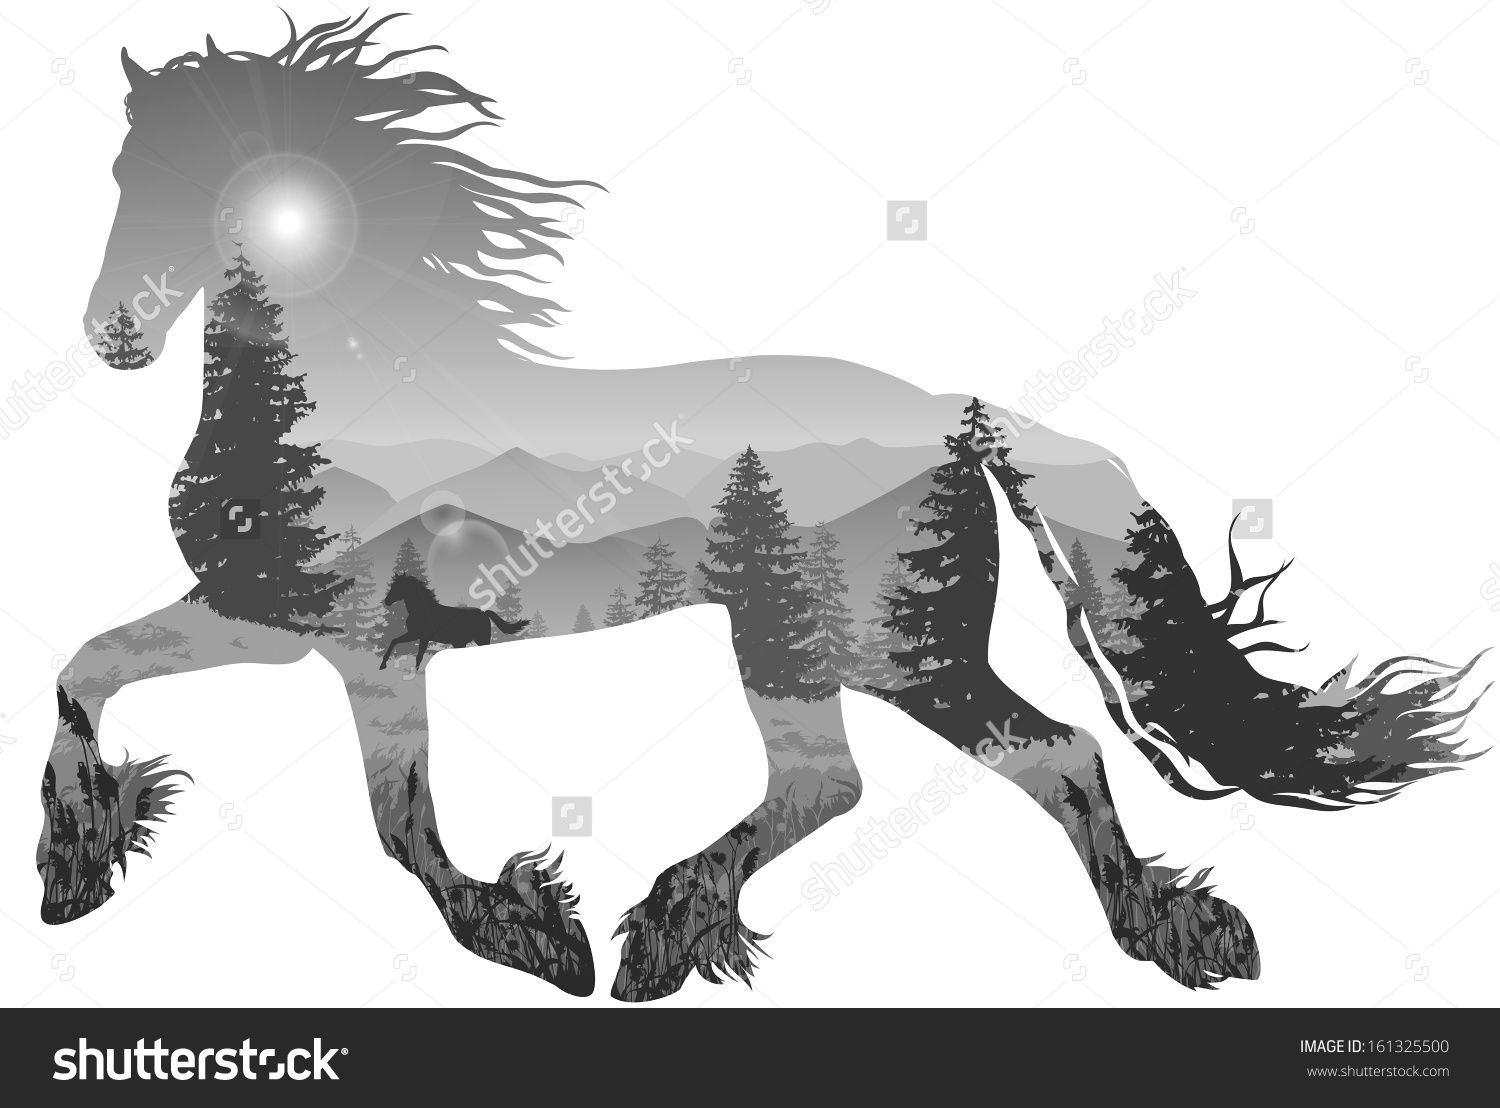 Silhouette Of A Running Horse Inside The Mountain Landscape